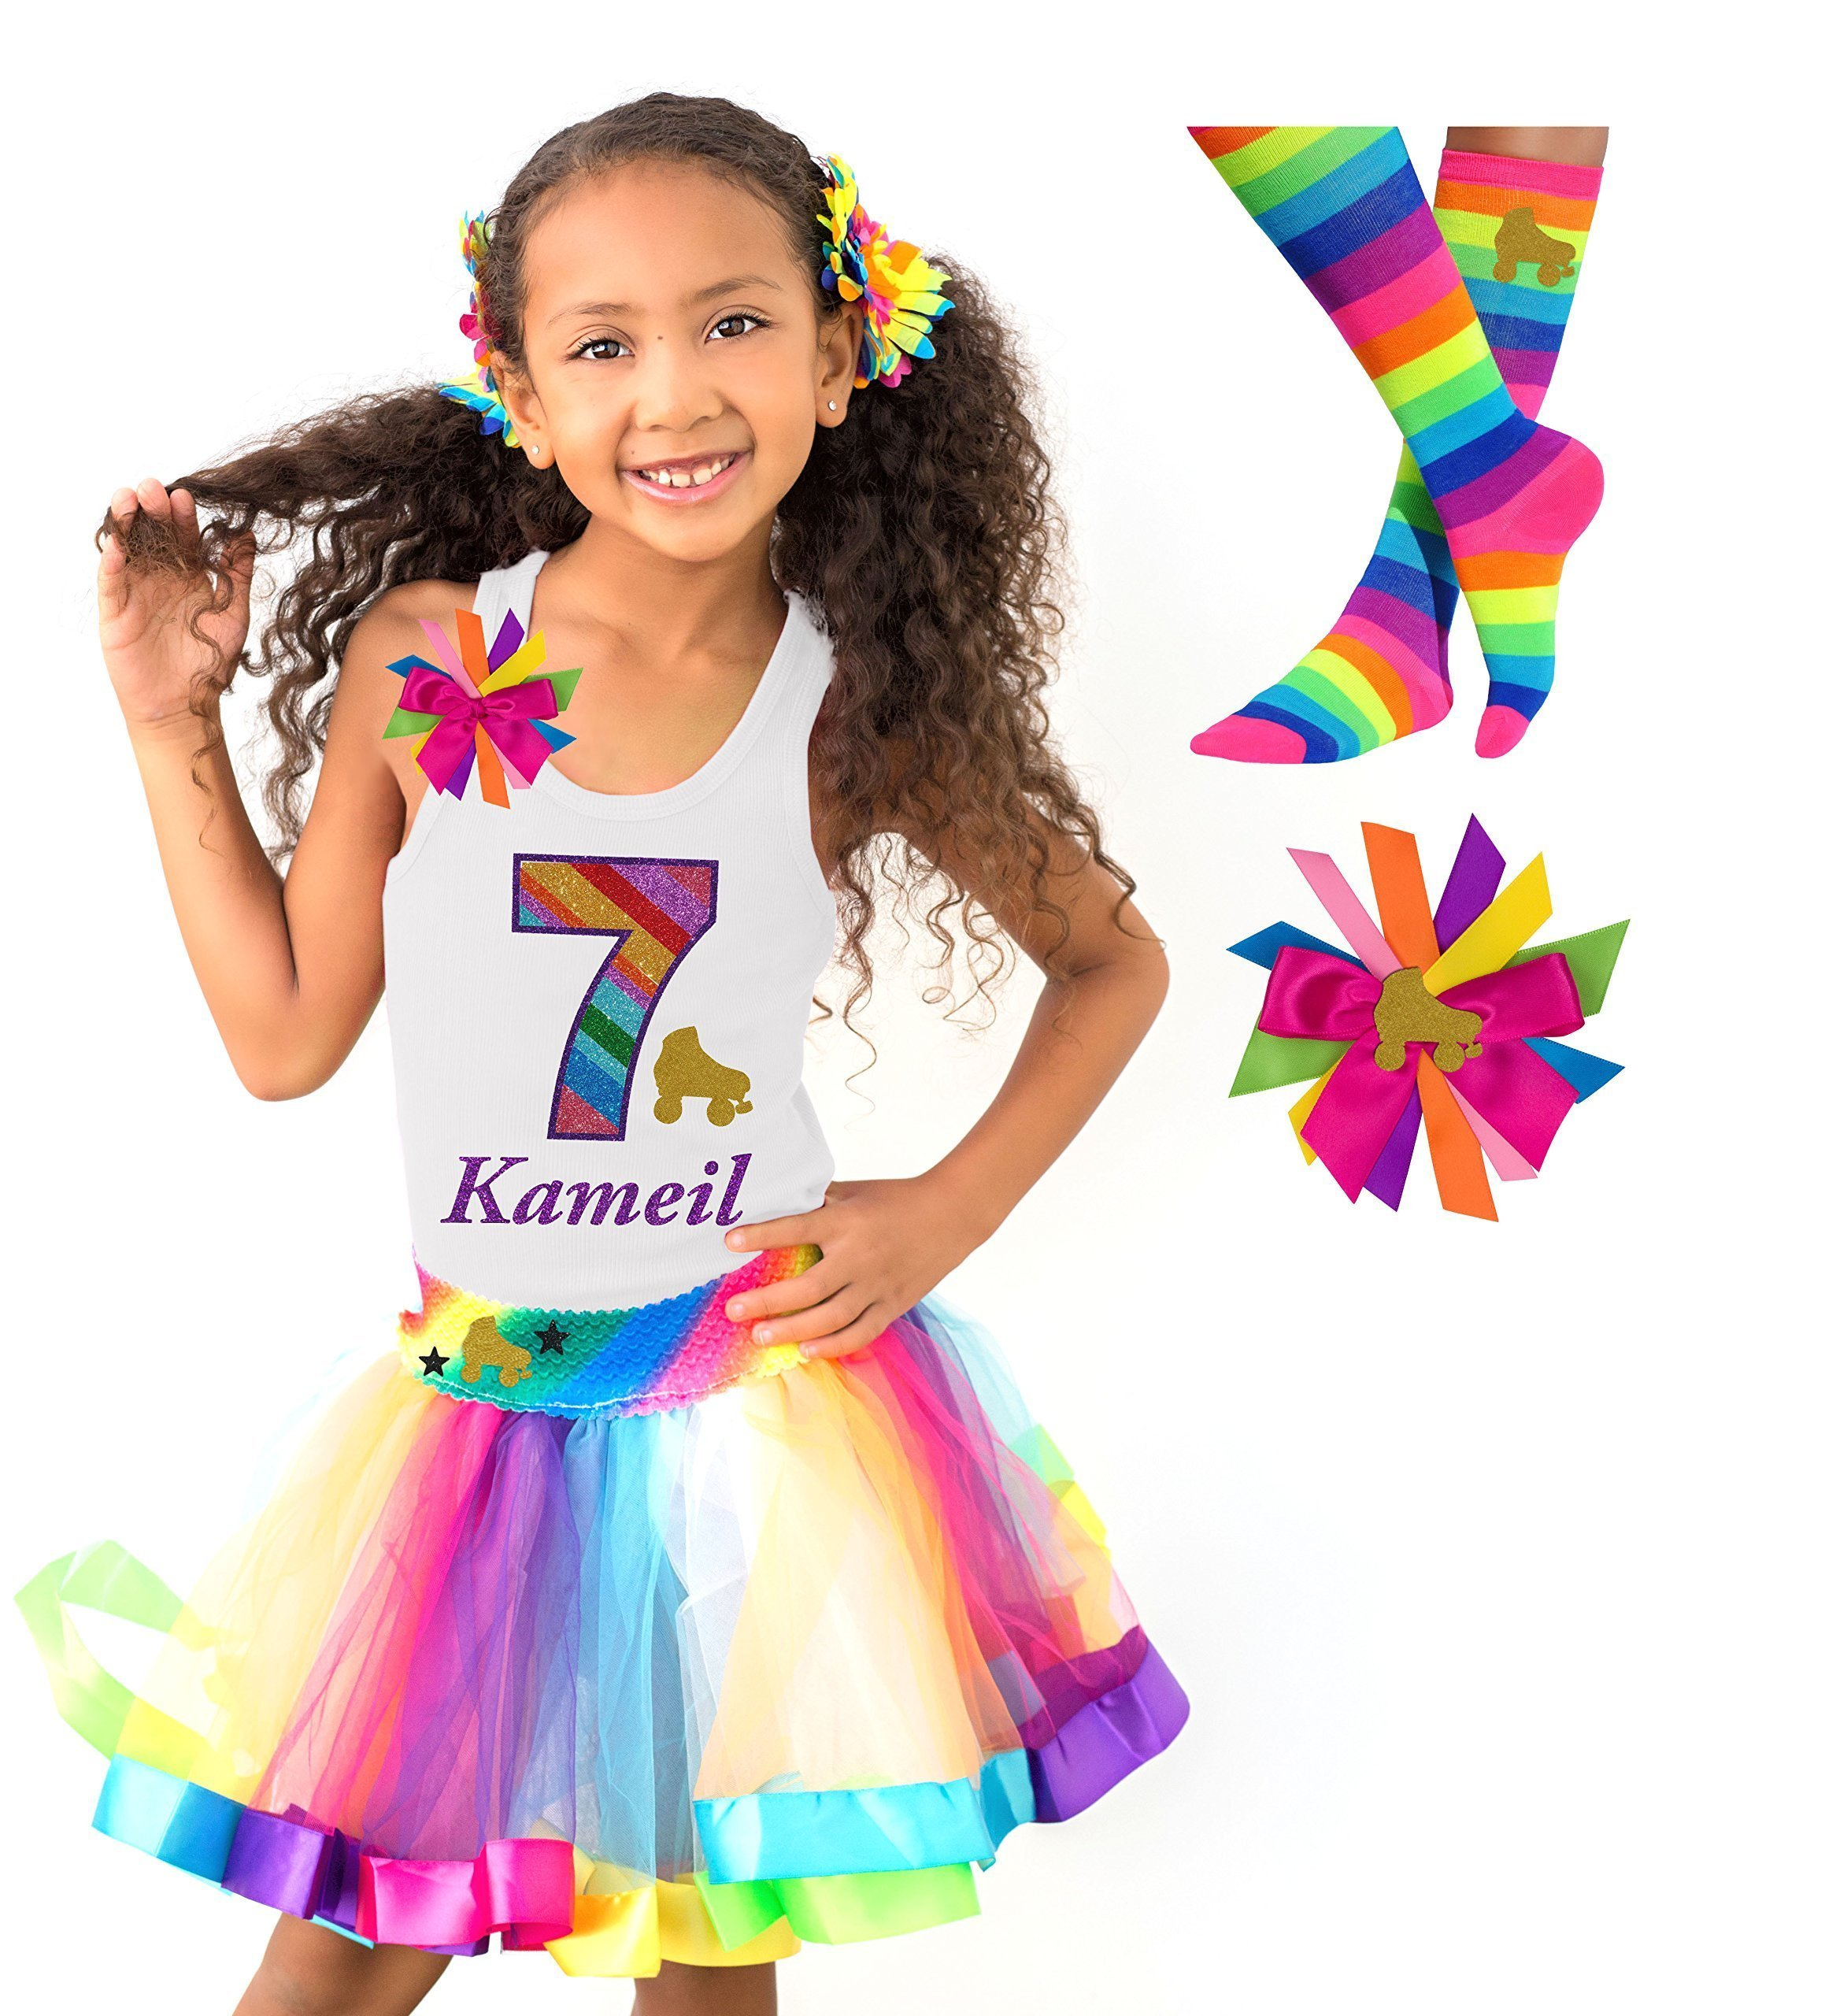 Roller Skate Shirt 7 Kid Girls Rainbow 7th Birthday Skating Outfit 4PC Gift Set Custom Personalized